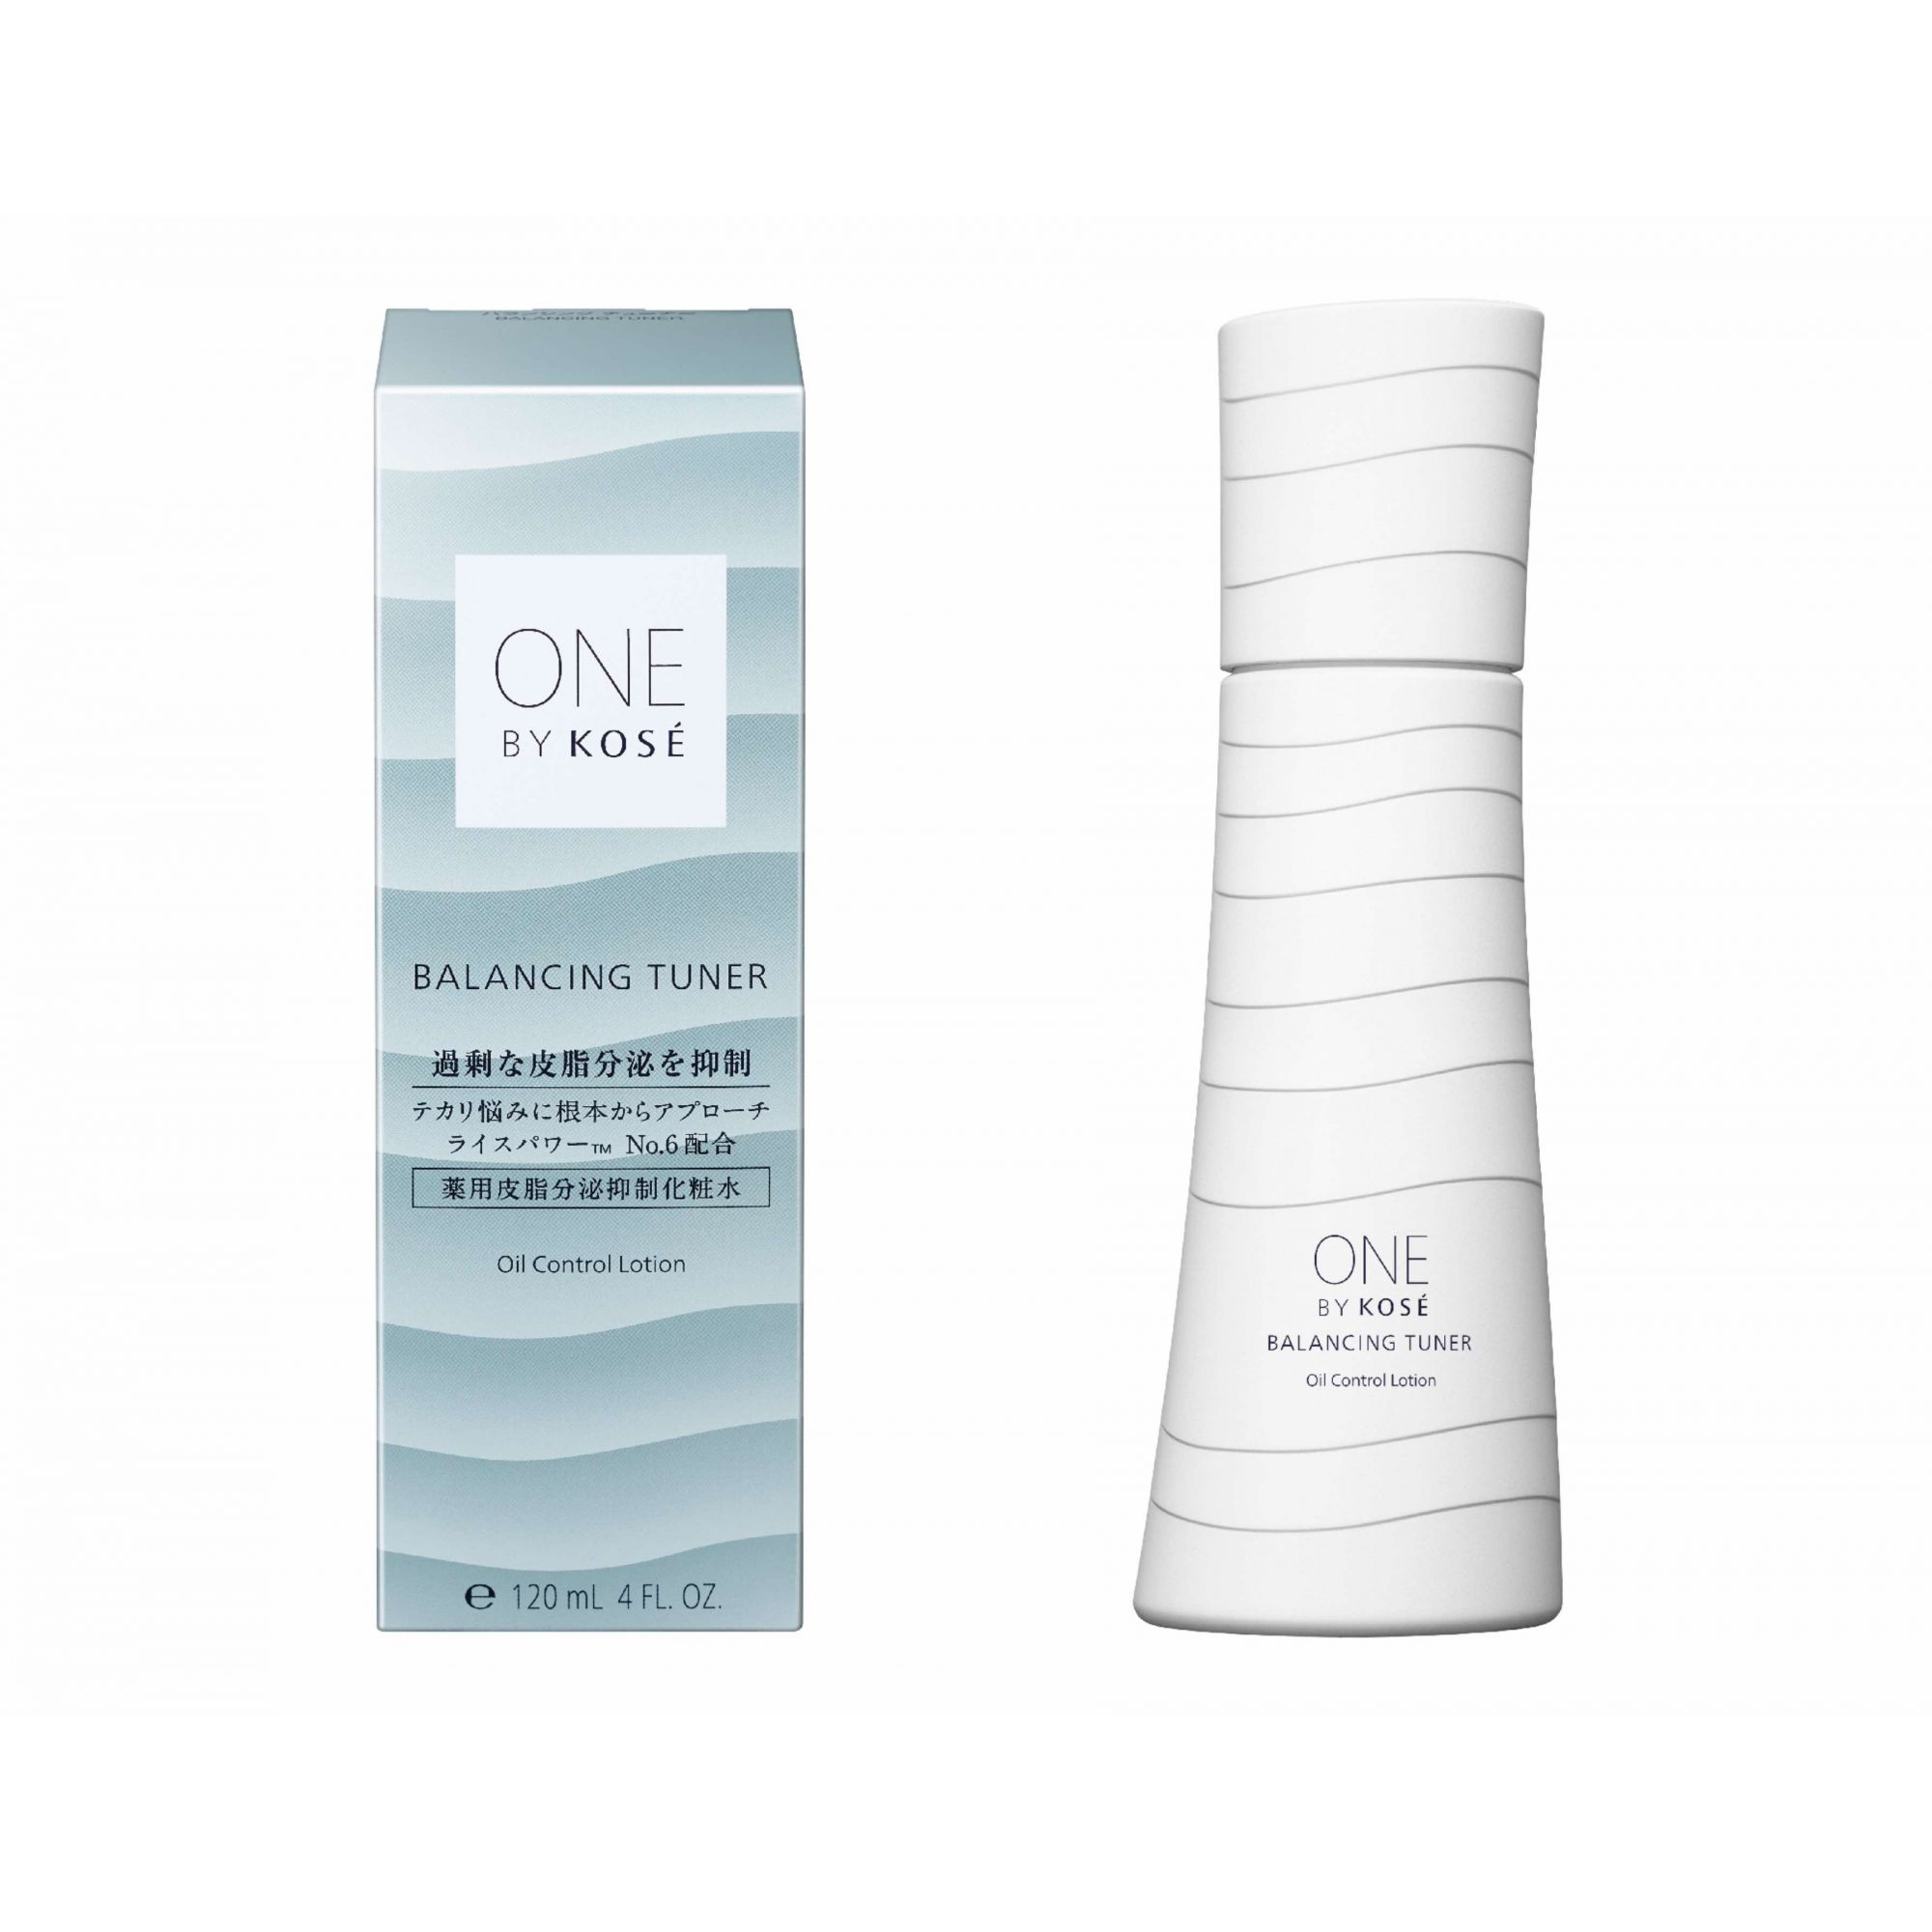 Kosé One By Kosé Balancing Tuner Oil Control Lotion 120ml